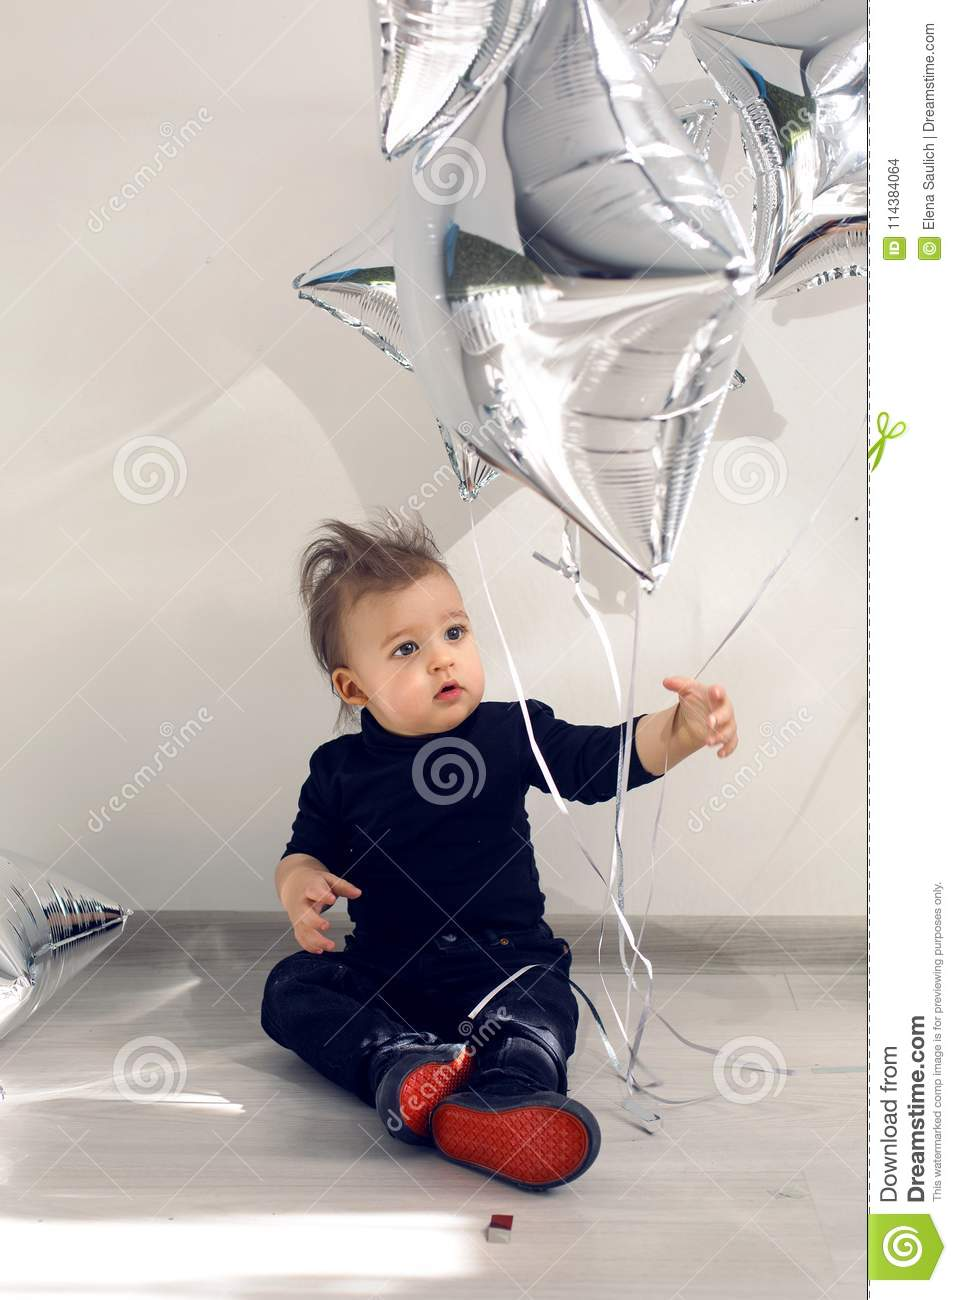 Child sits on the floor with balloons